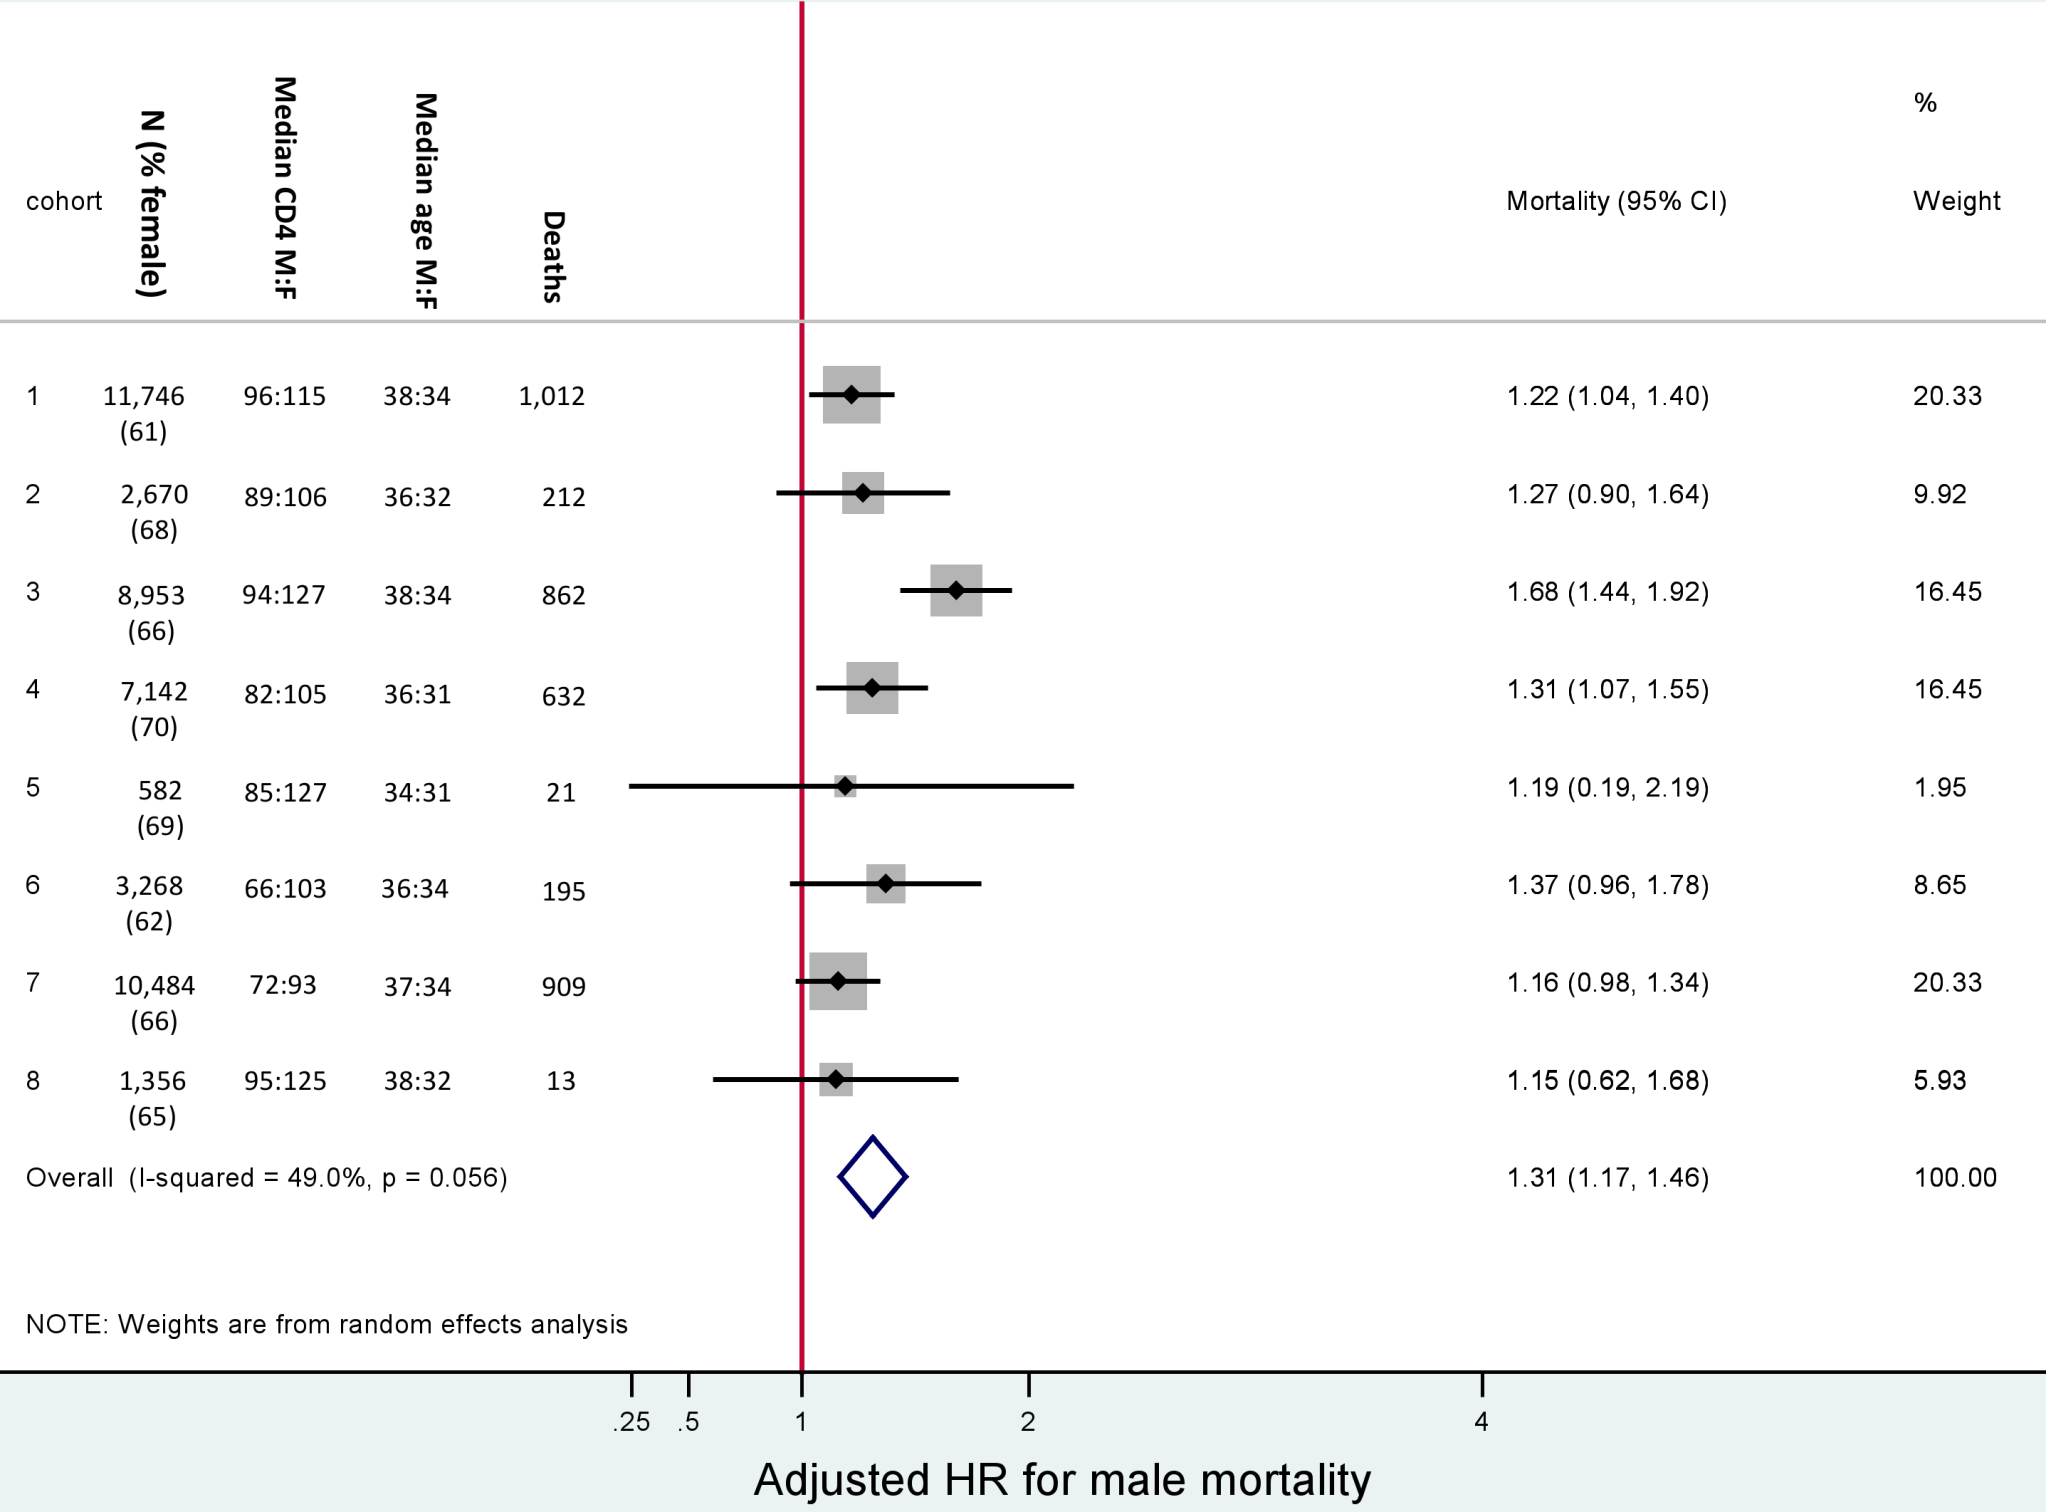 Male versus female mortality. Baseline characteristics and adjusted hazard ratios for male versus female mortality, by cohort.